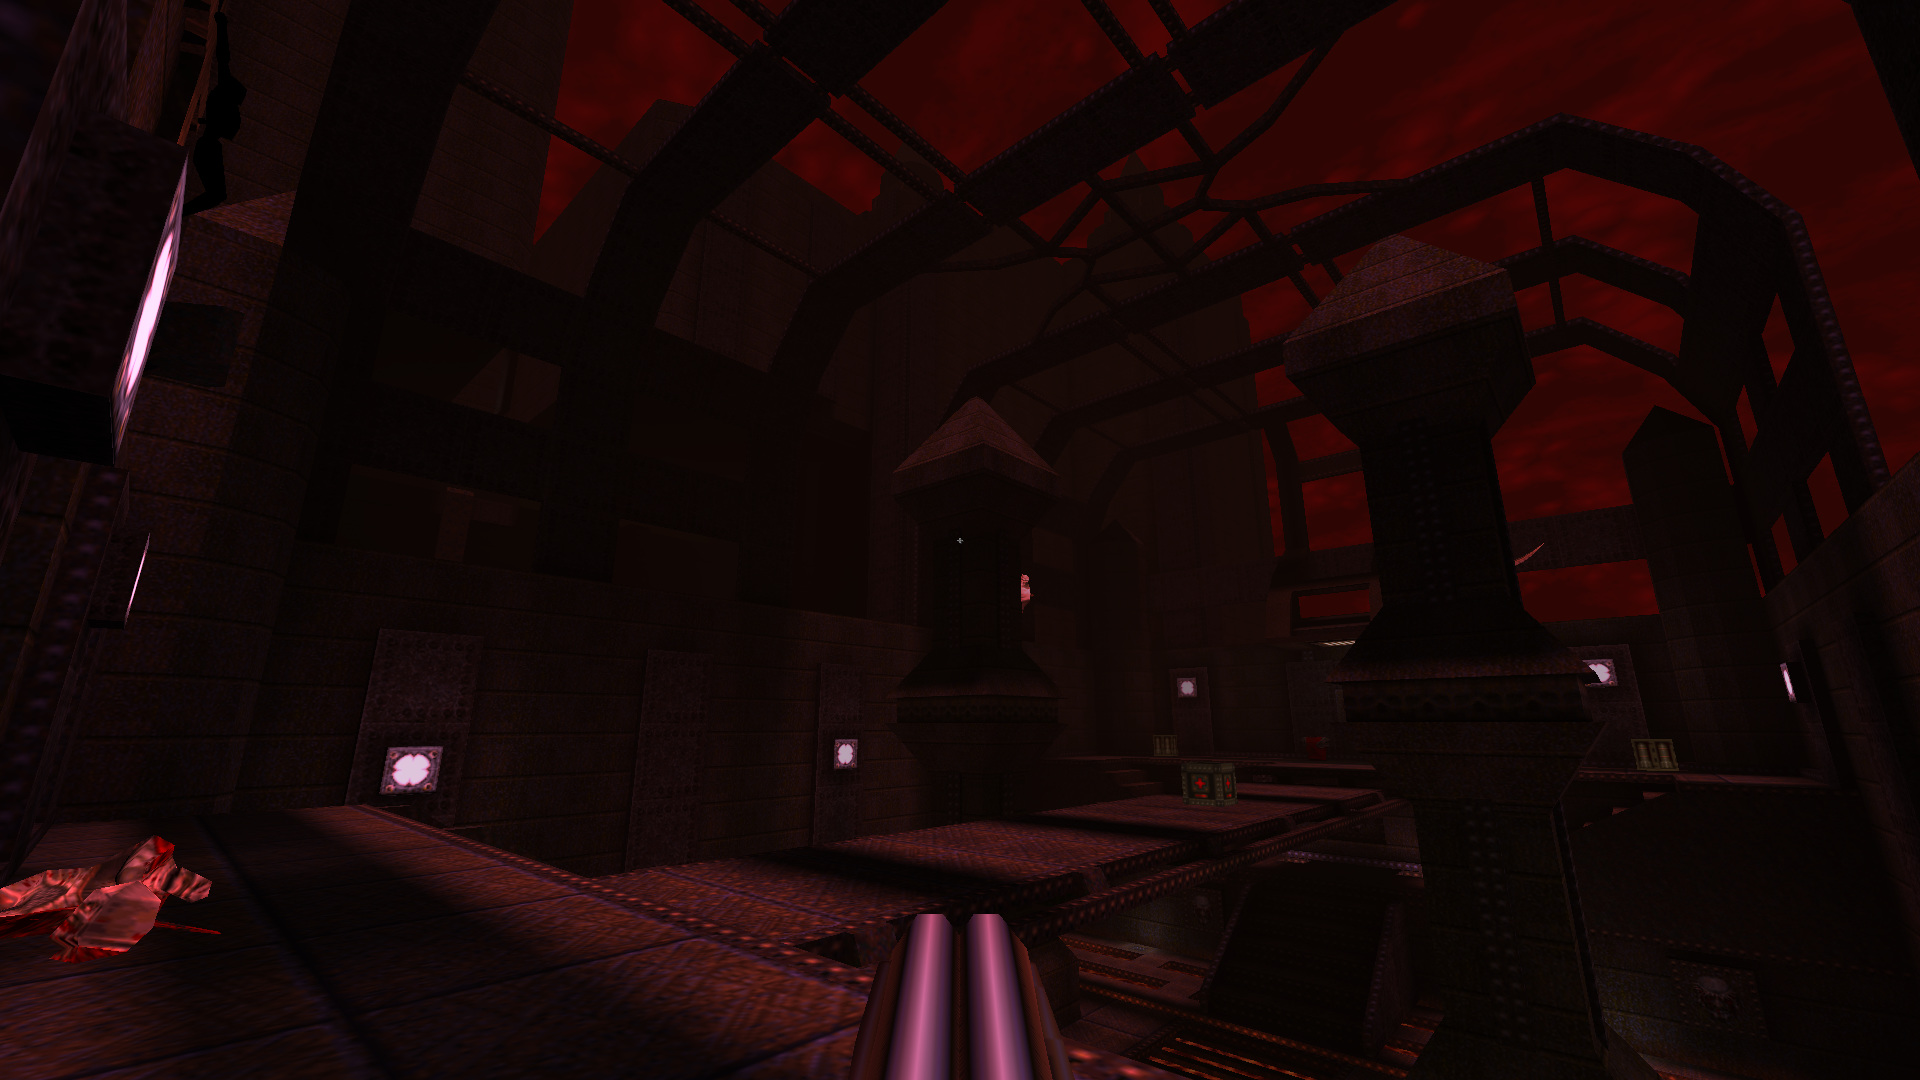 Quake Levels and Mods – The Pixelated World